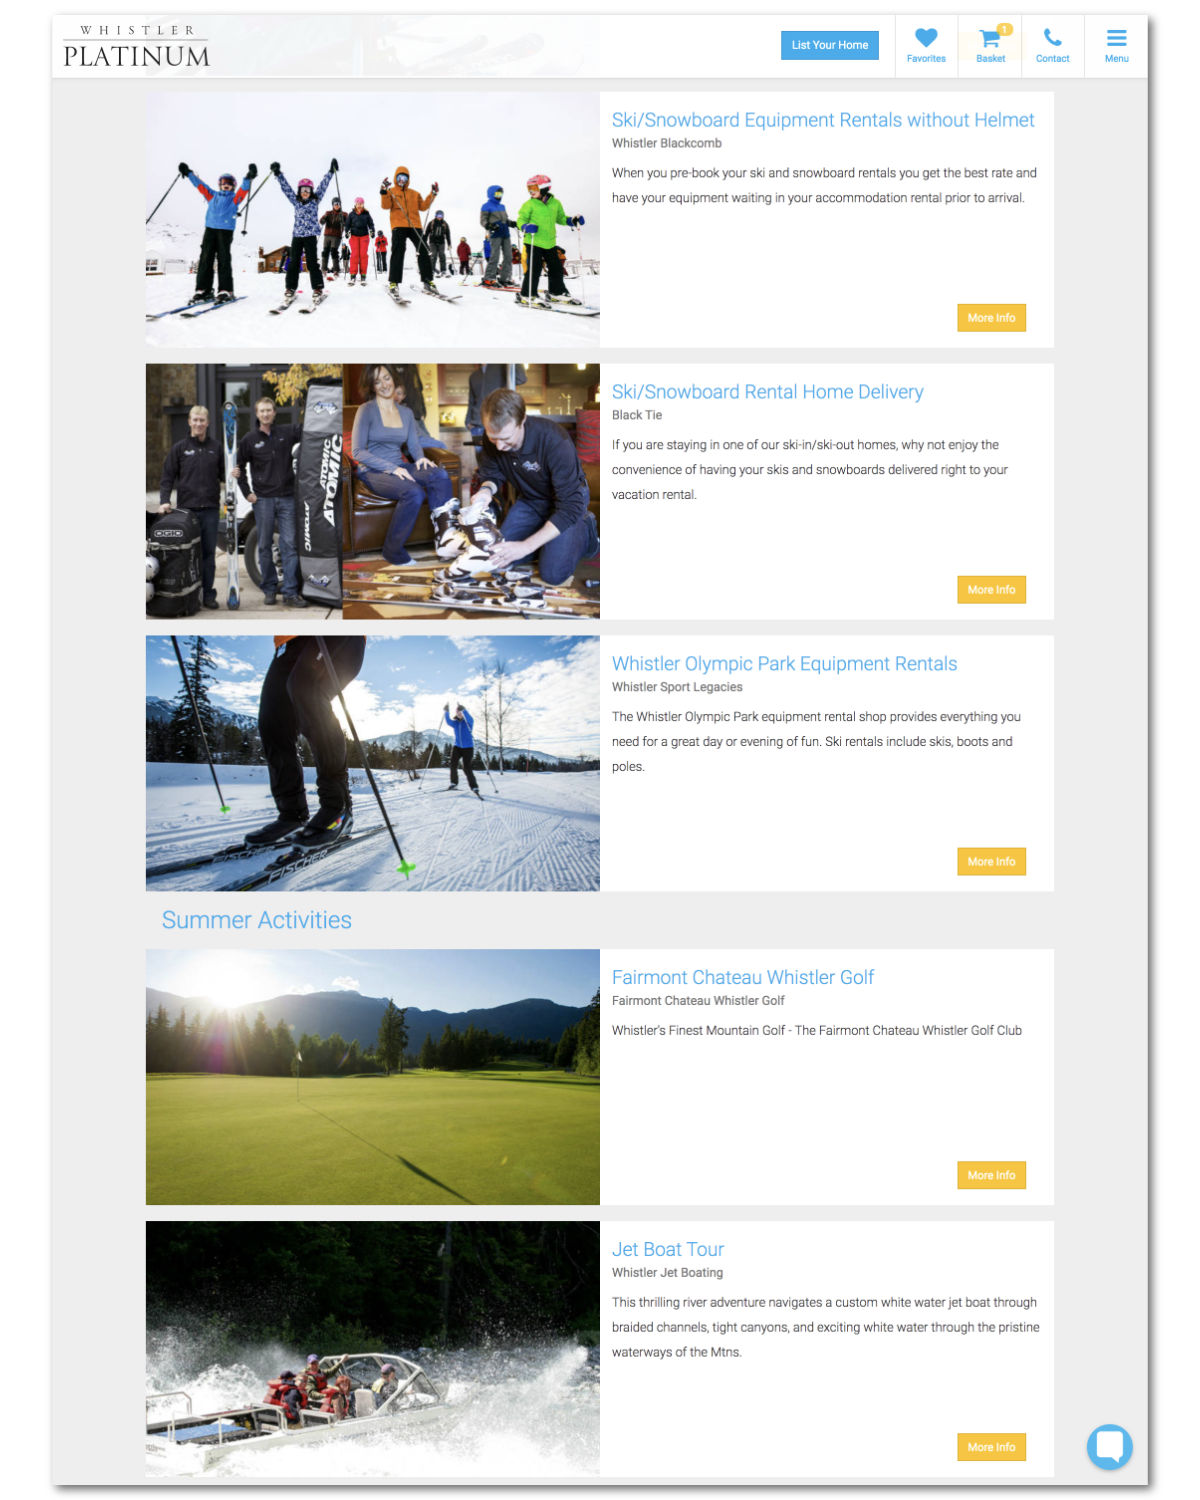 Whistler Platinum Activities, Products and Add-ons